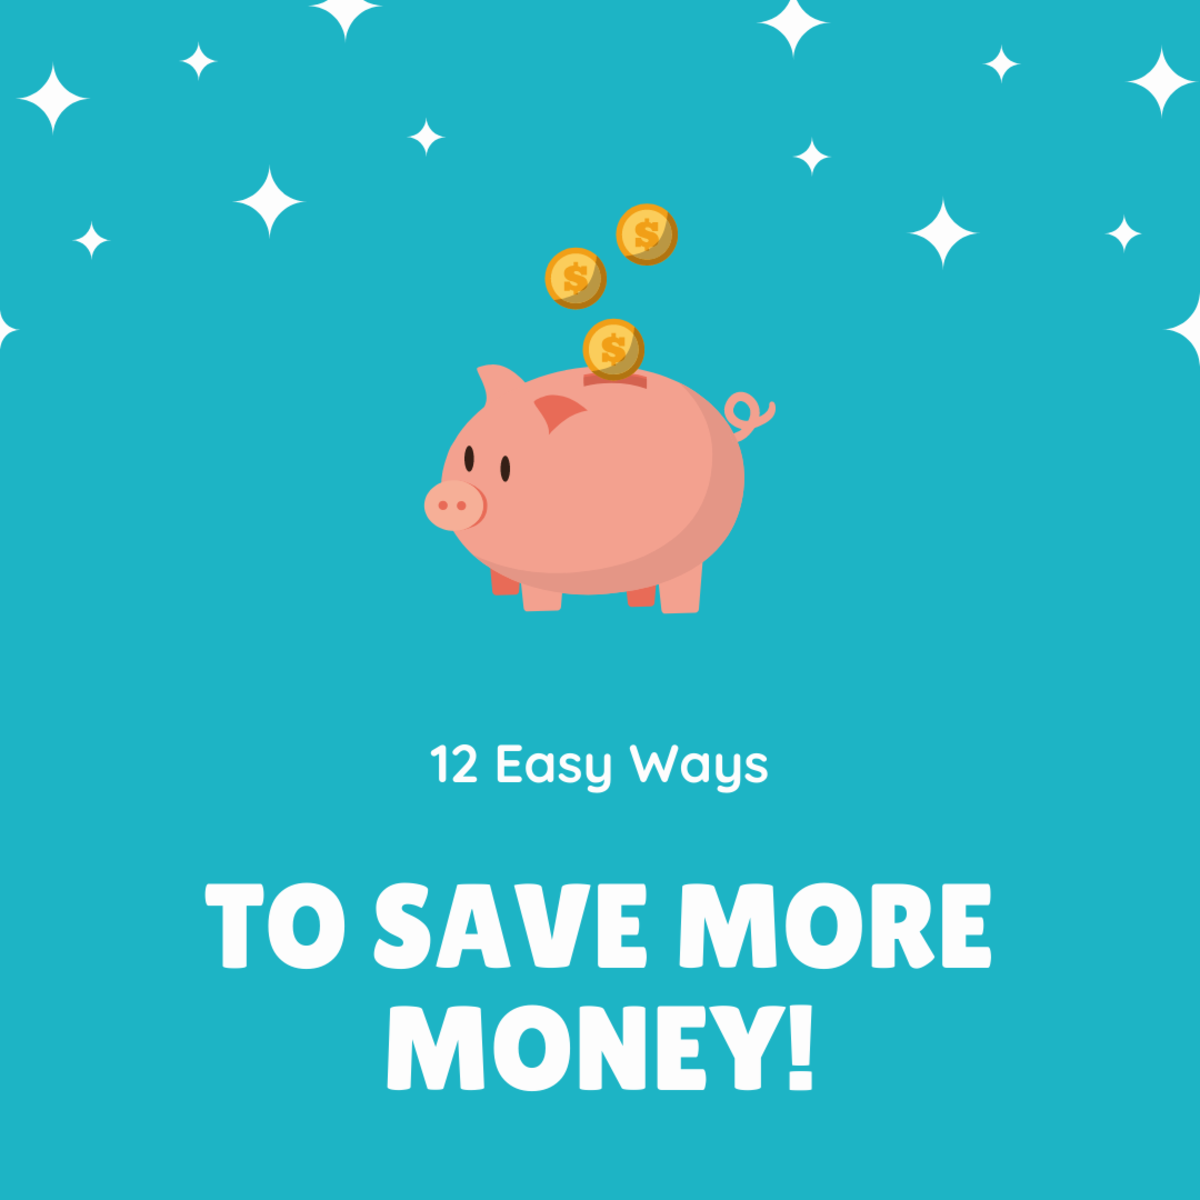 Start saving money by following these tips!